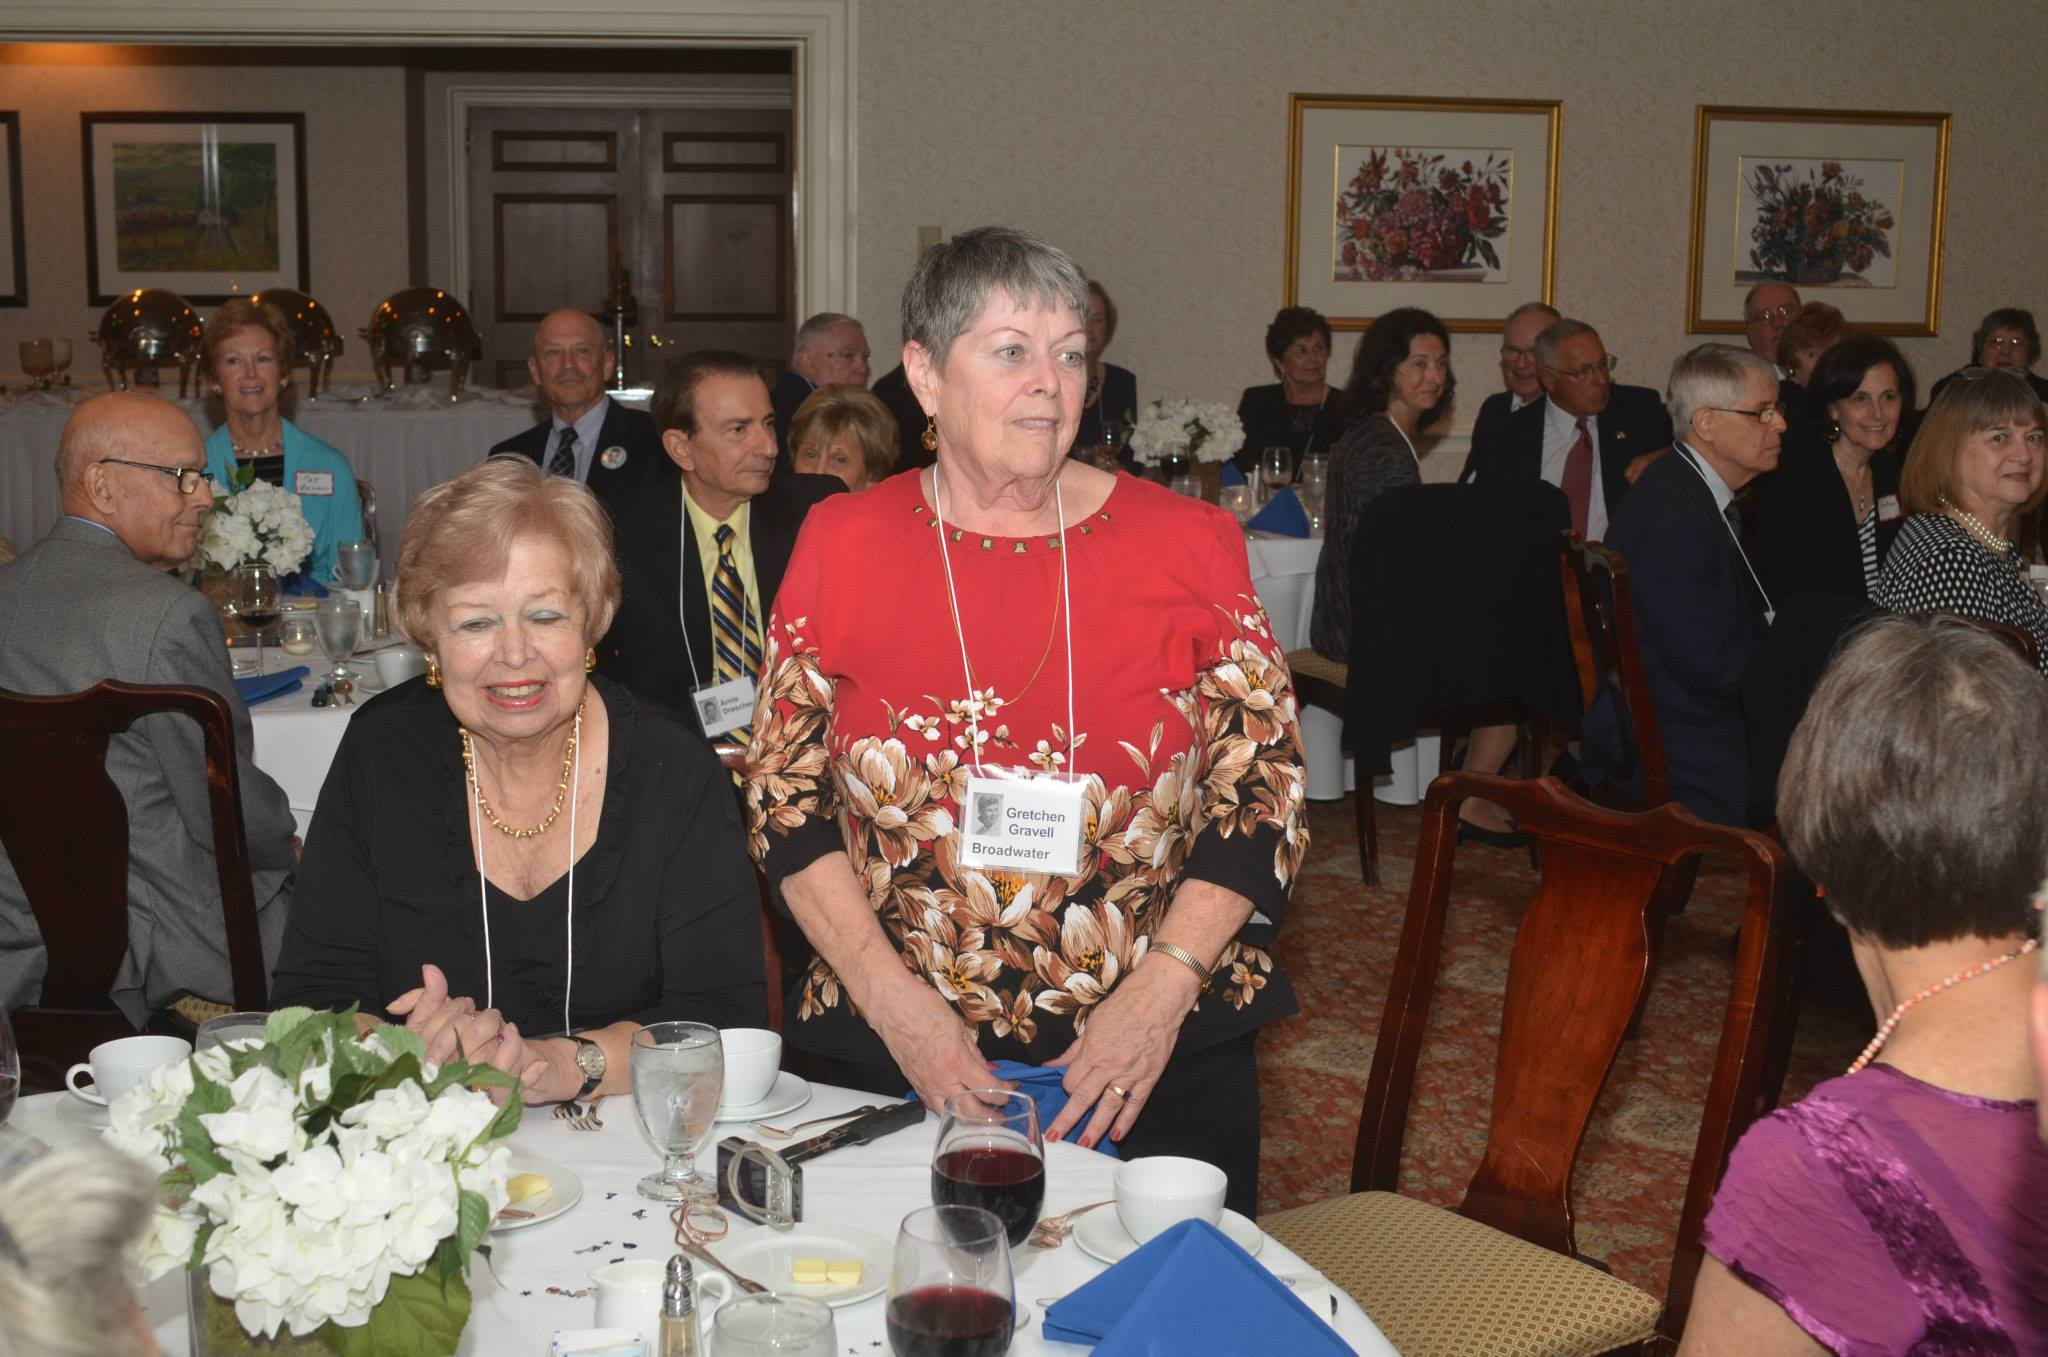 55th Reunion - Saturday Night Oct 11, 2014